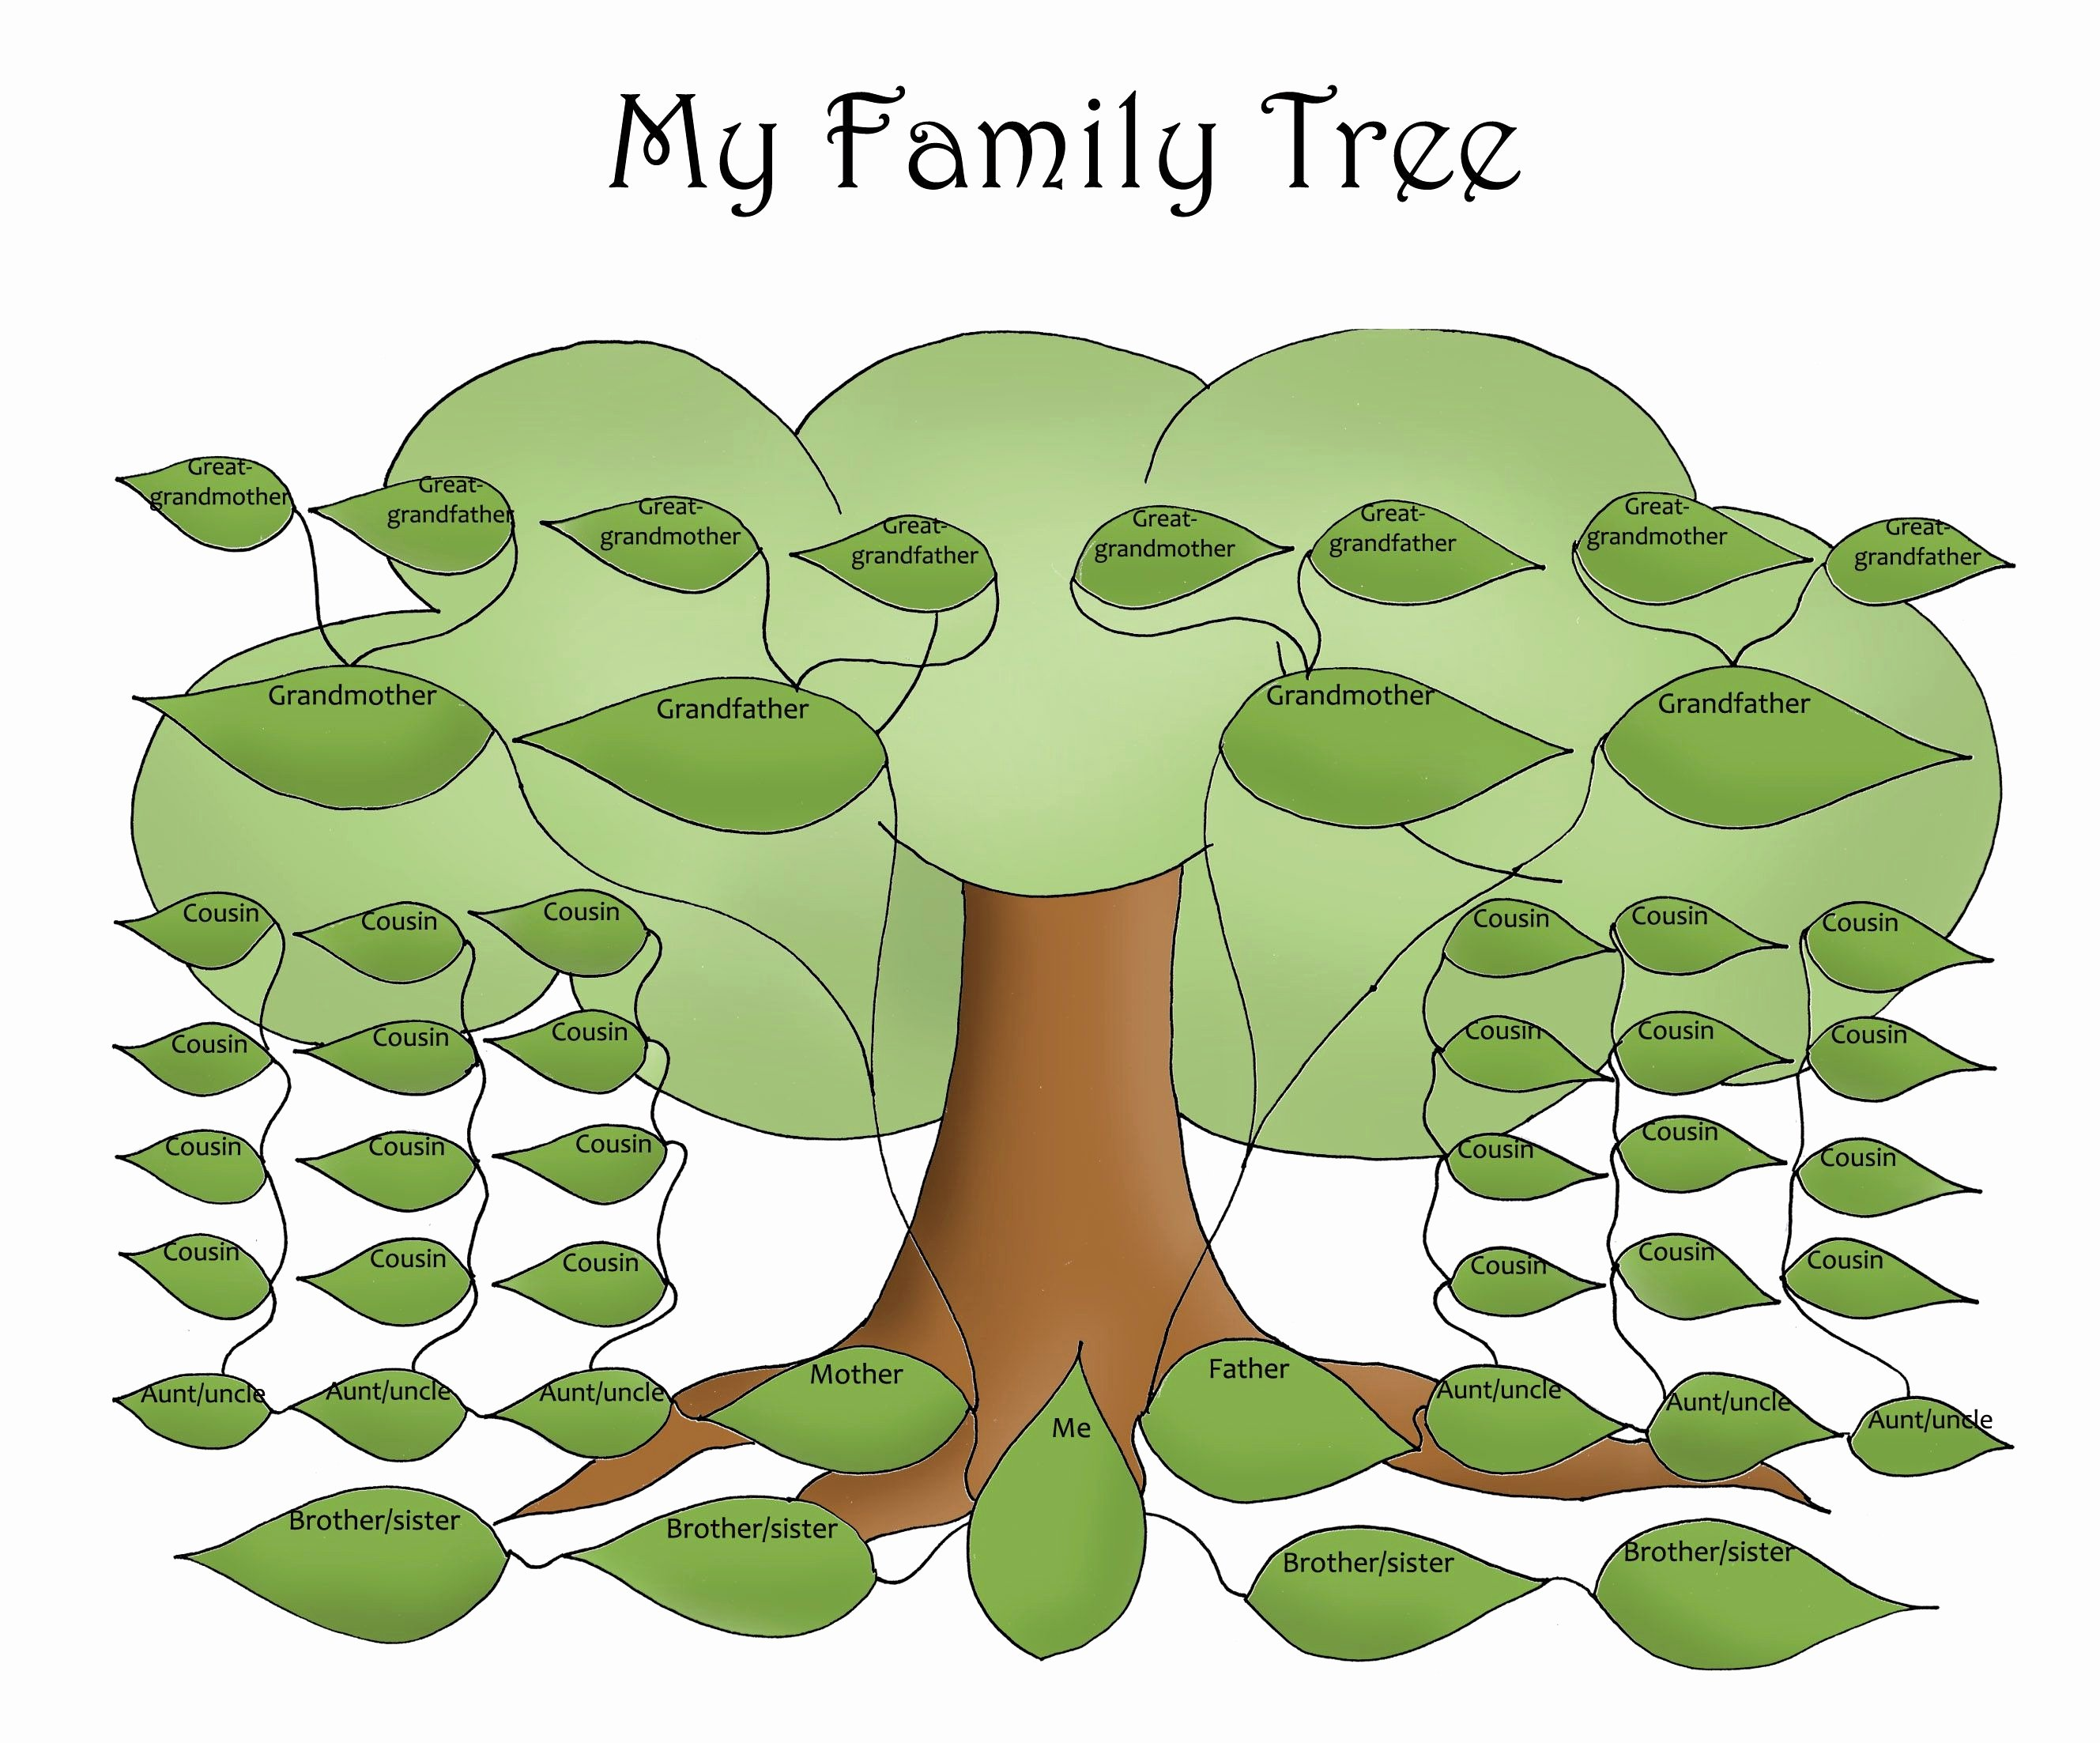 Printable Blank Family Tree Lovely Free Editable Family Tree Template Daily Roabox